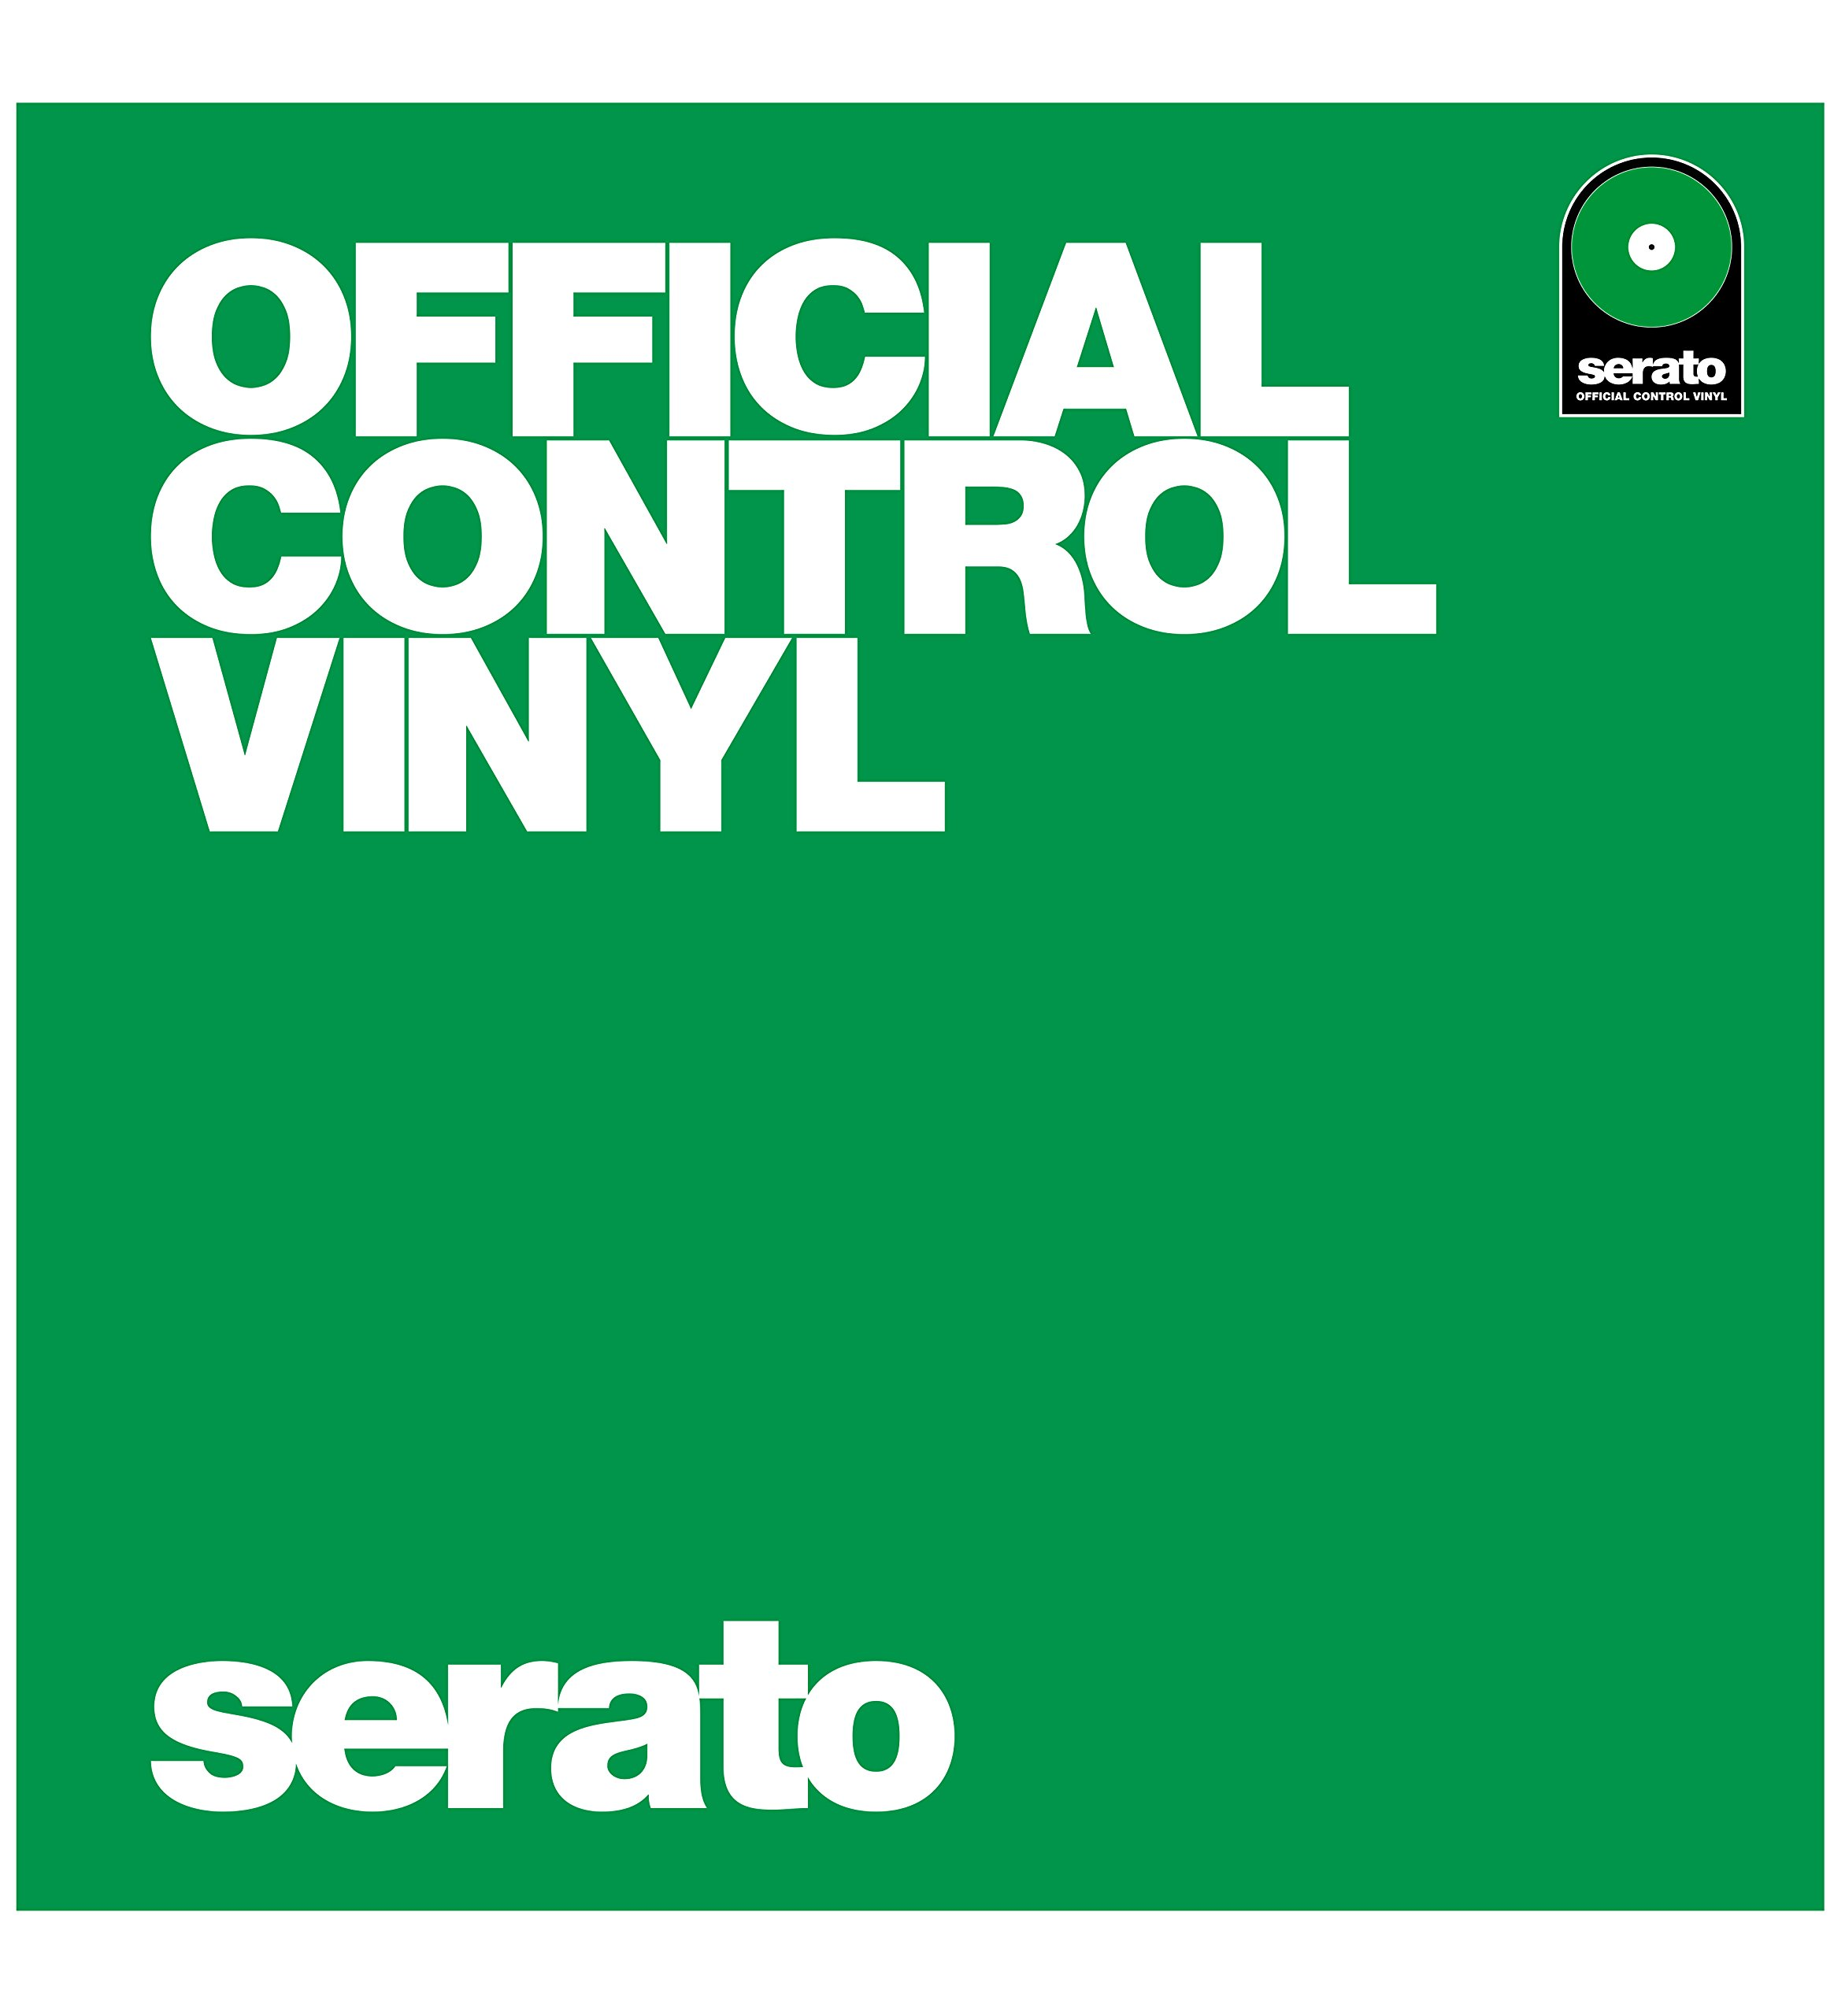 "Serato SCV-PS-GRN-OV 12"" Serato Performance Series Green"